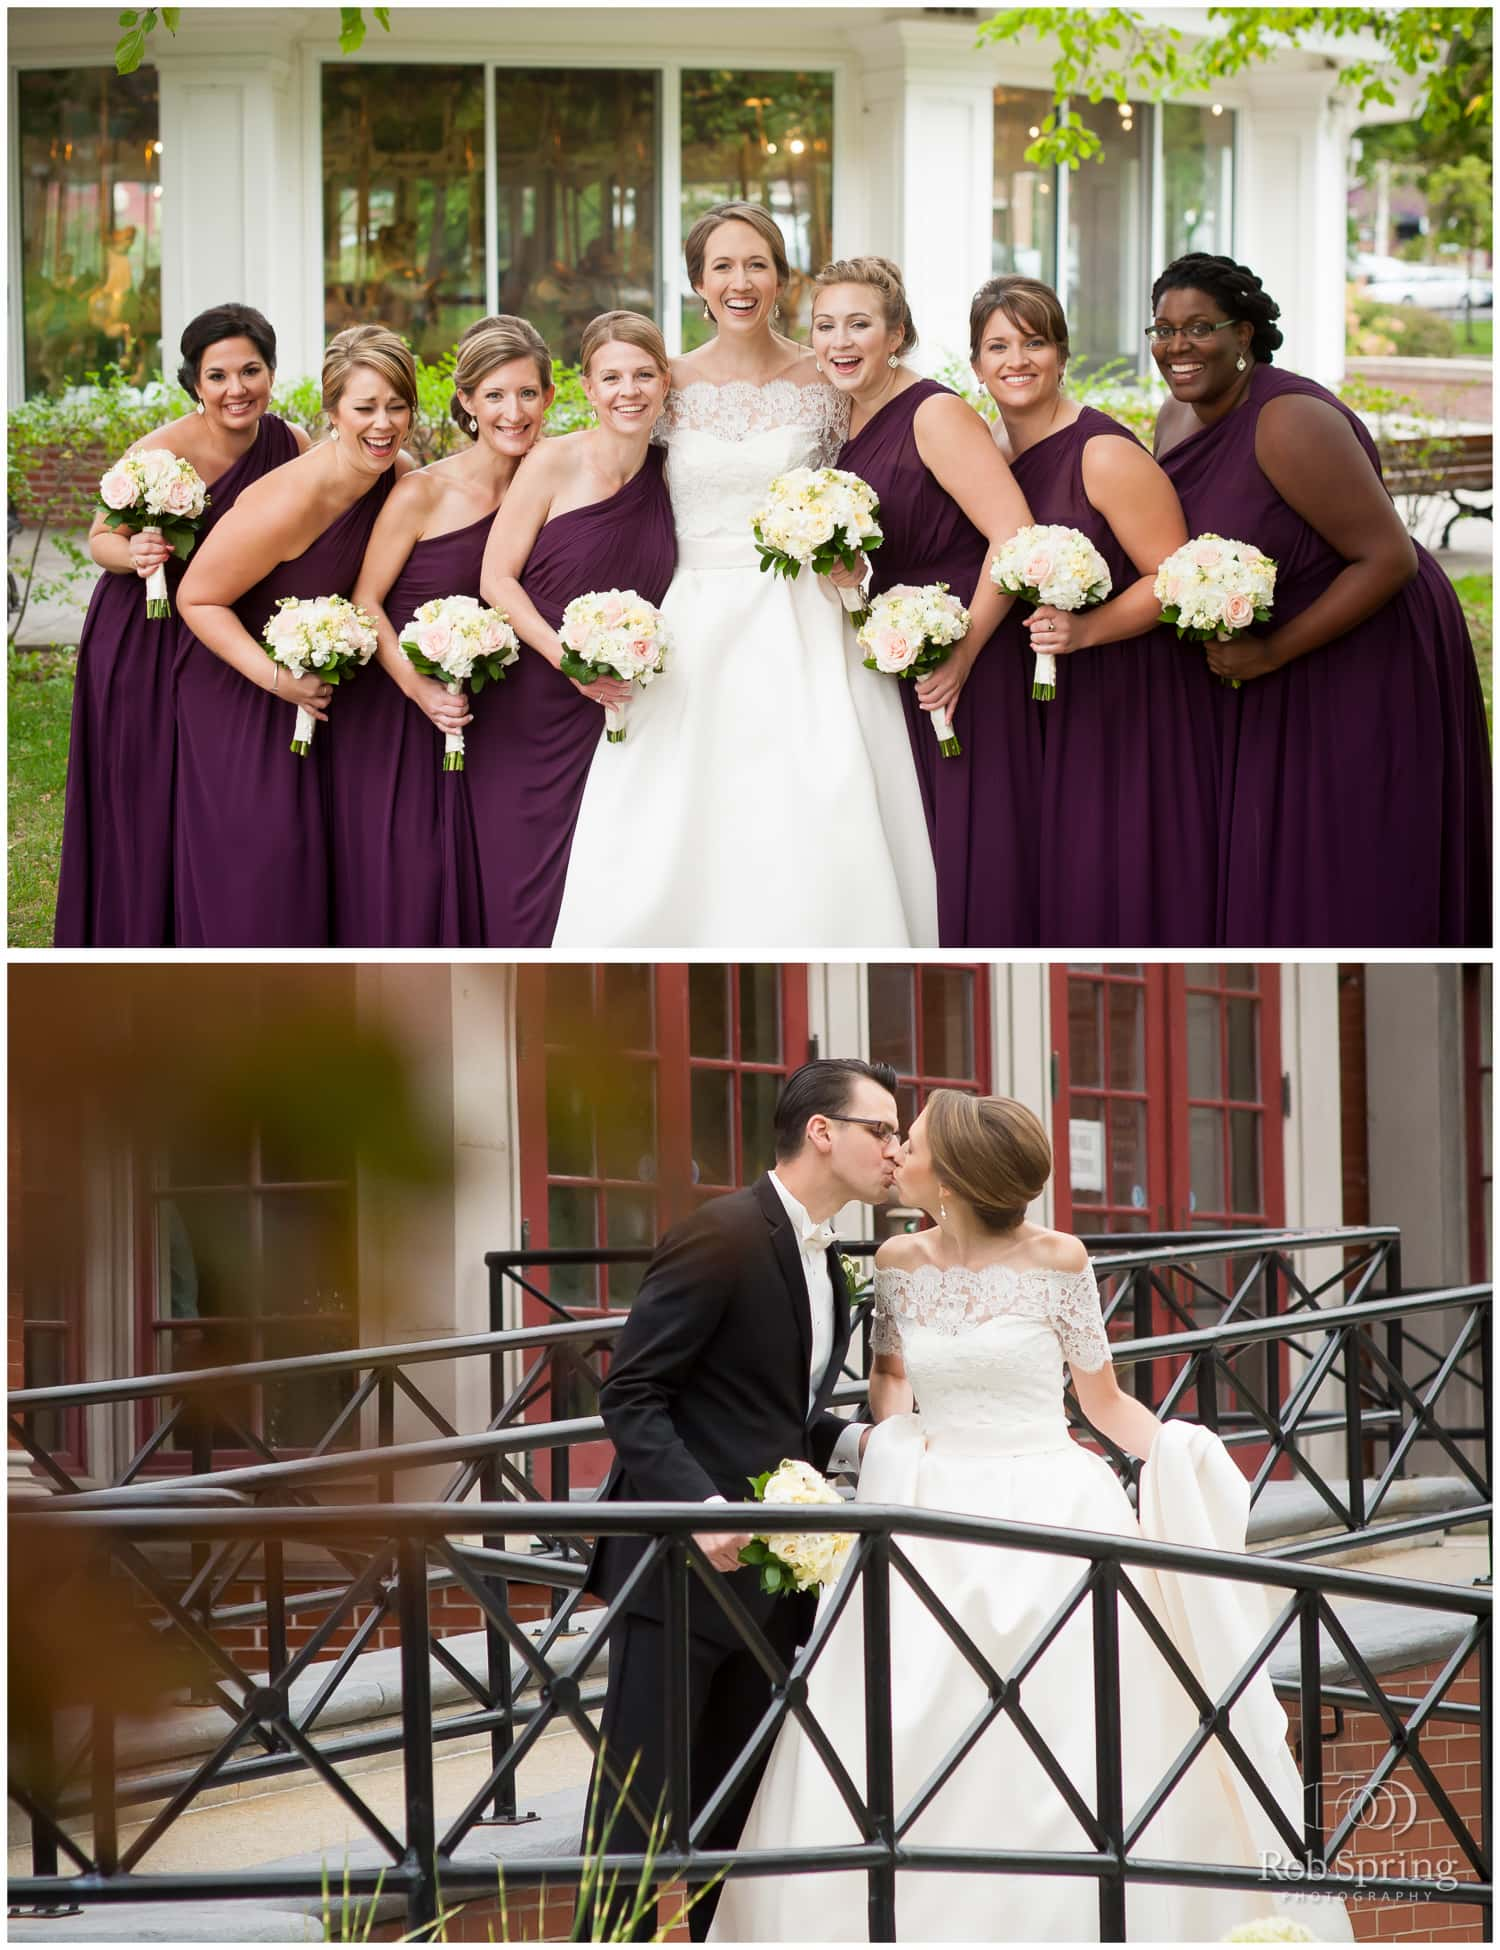 laughing bridesmaids with purple dresses and white flower bouquets, Saratoga Springs, NY Wedding photos